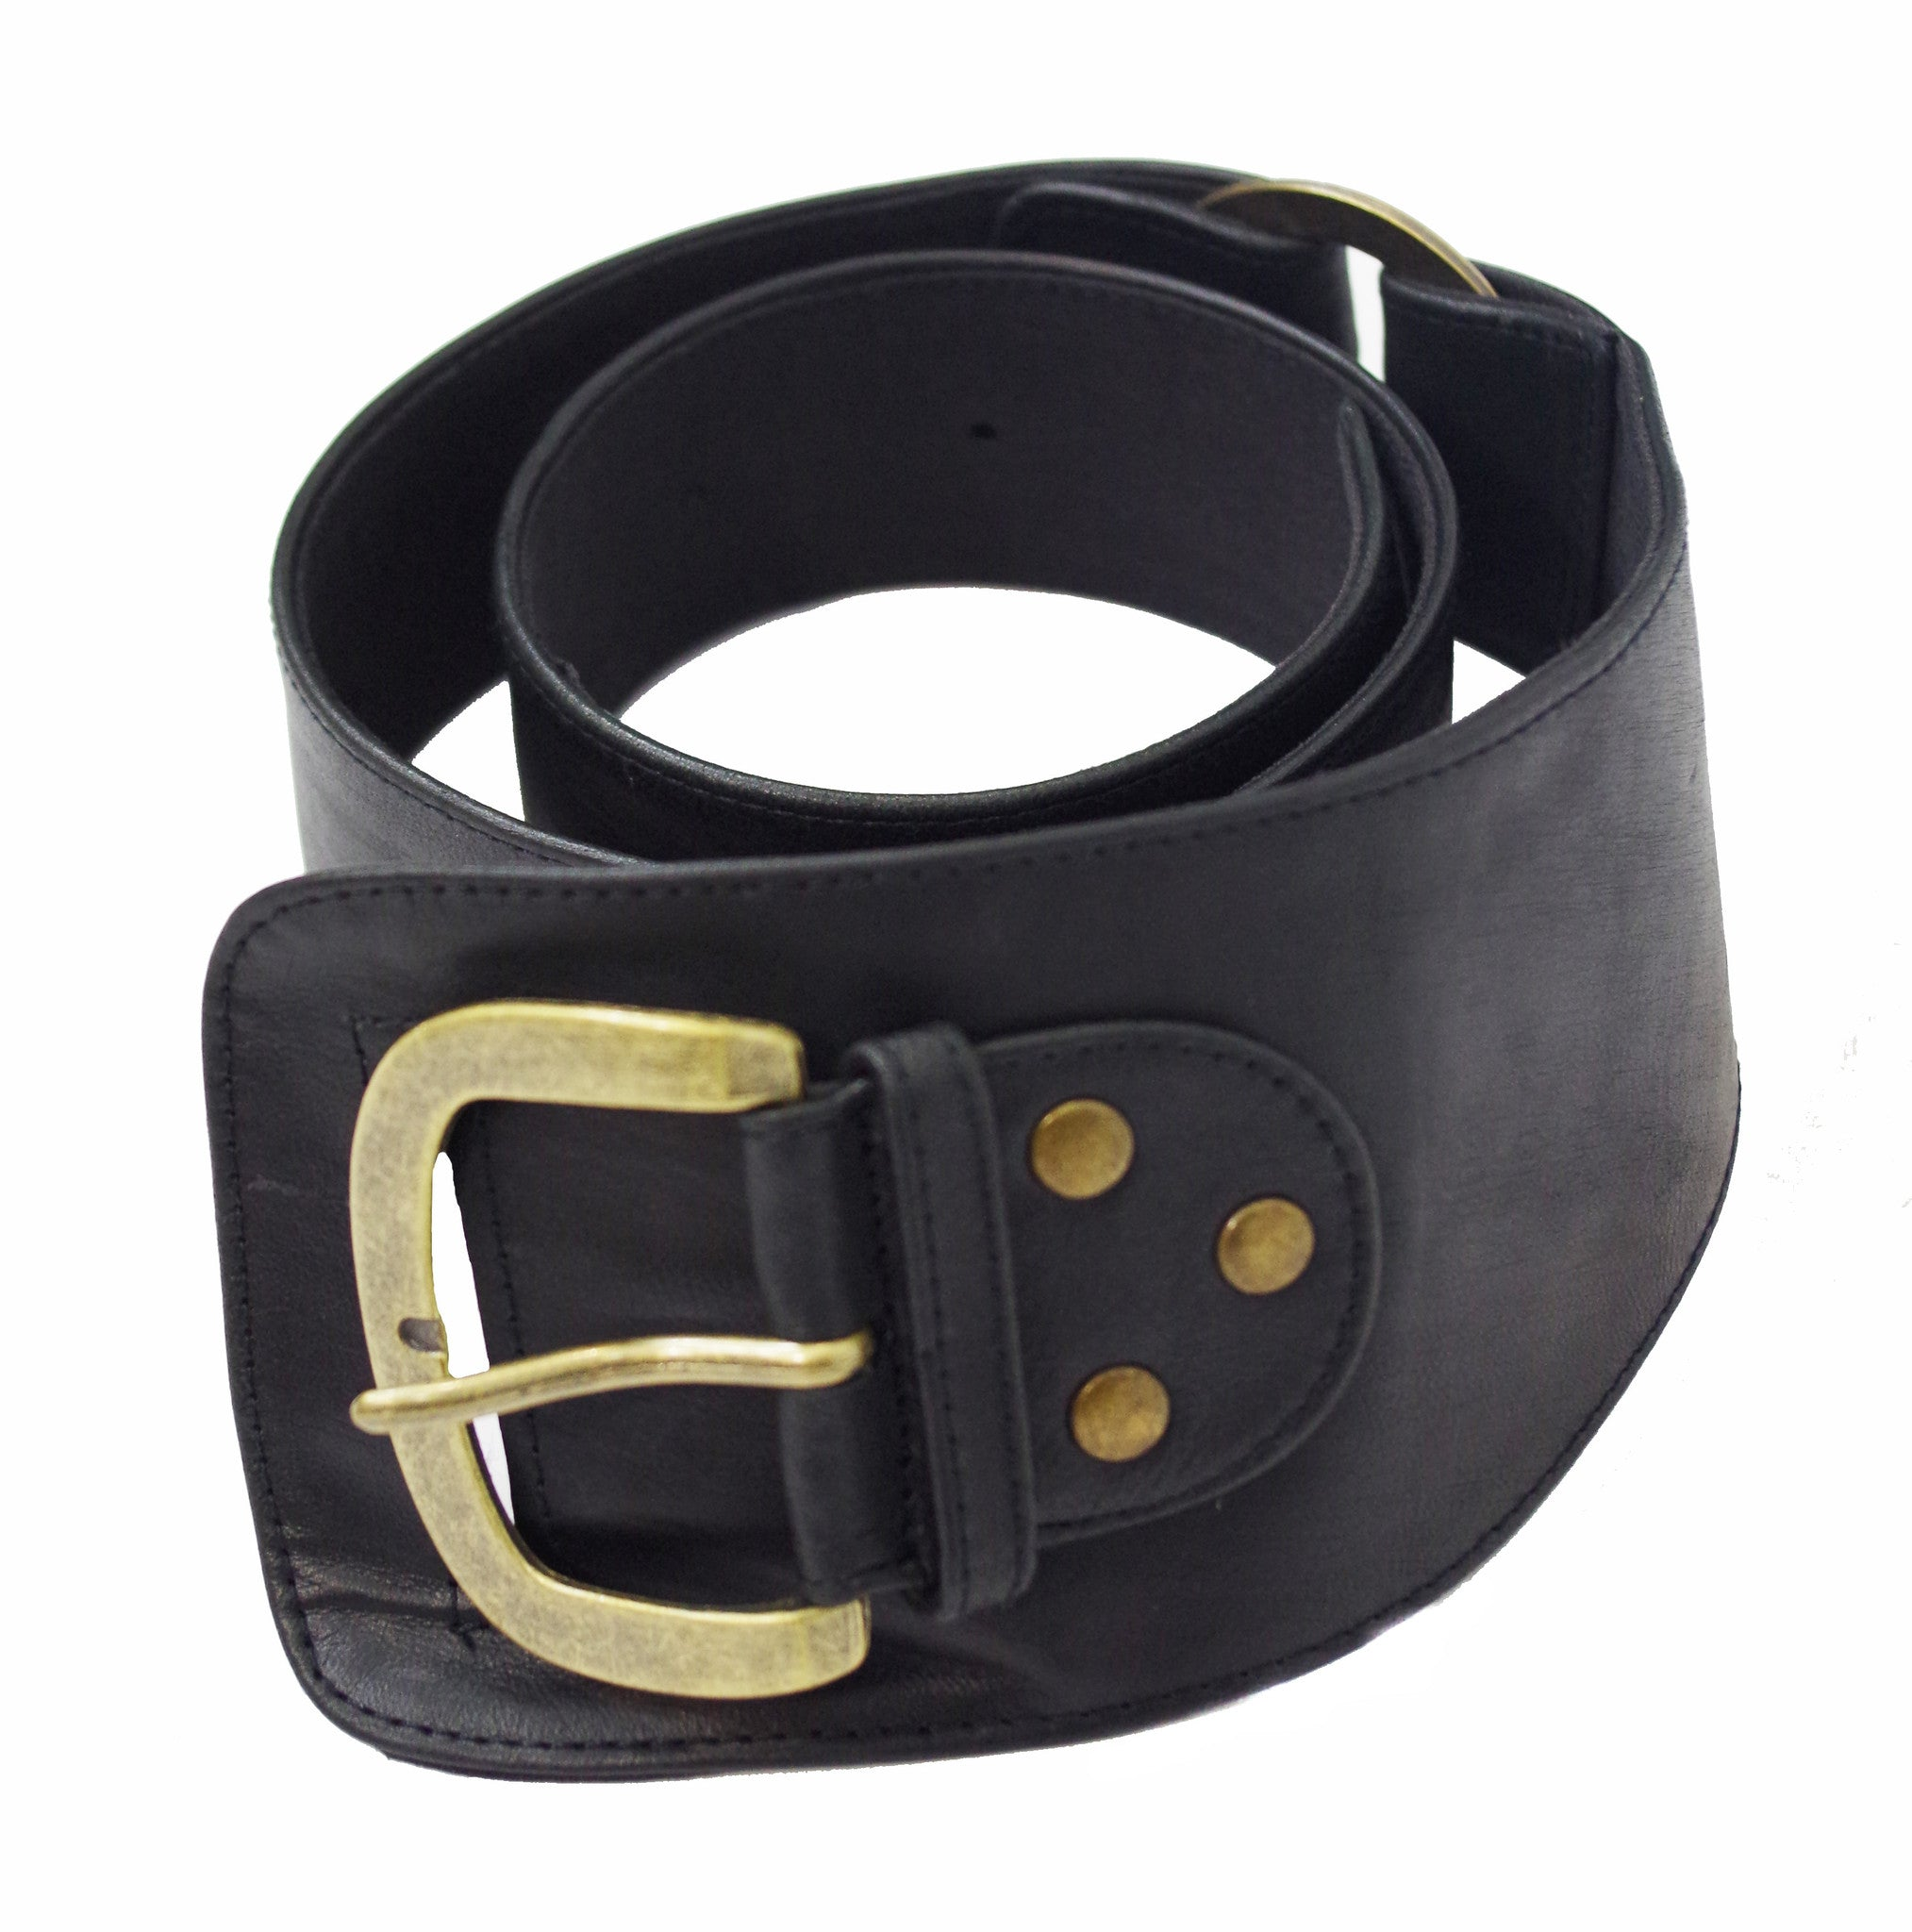 Grin & Belt it-Contoured leather belt - Agabhumi